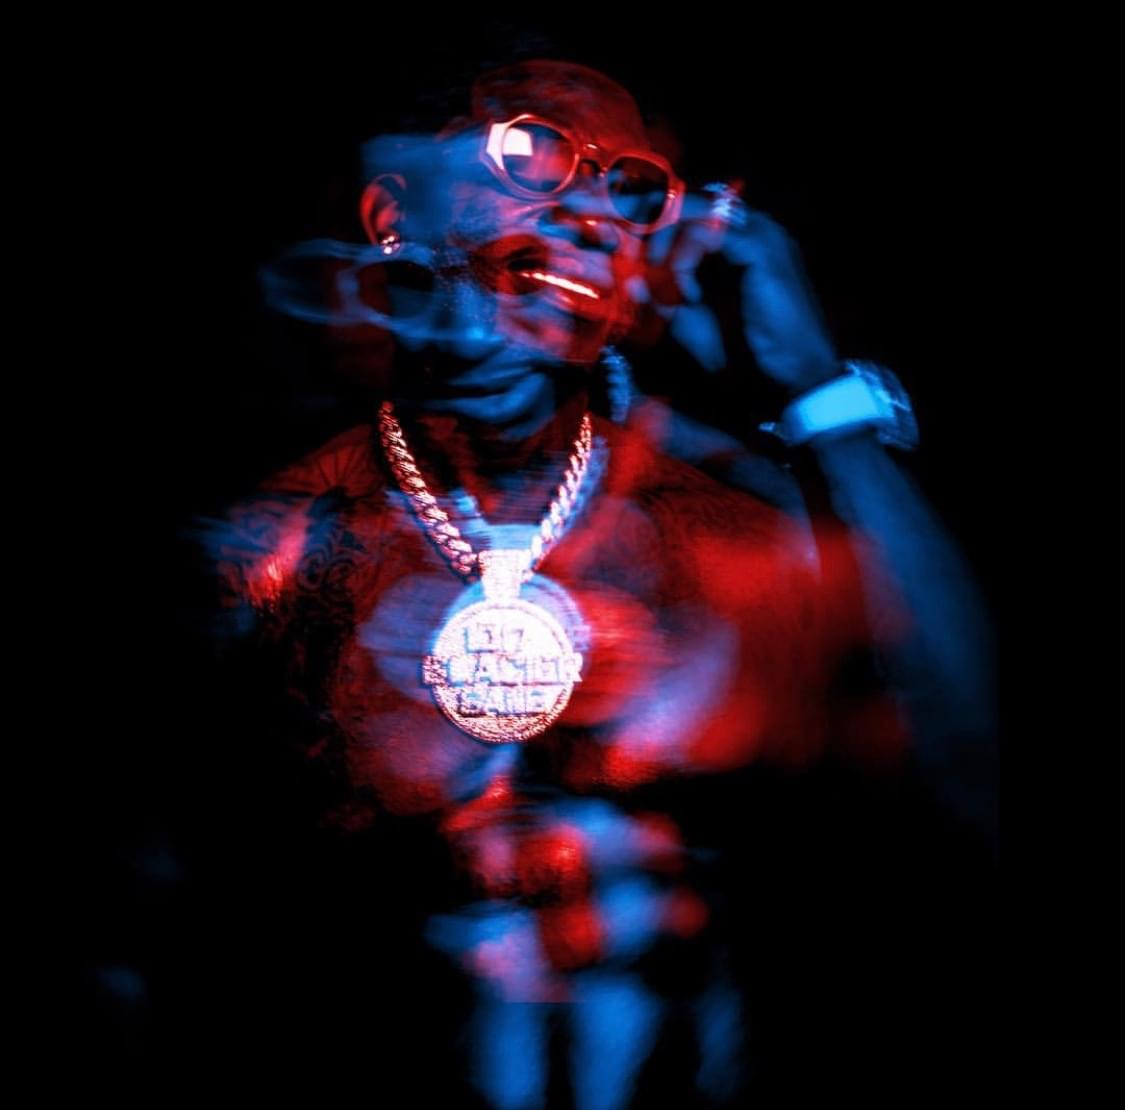 Gucci Mane Releases 'Evil Genius' Featuring 21 Savage, Quavo, and More [STREAM]